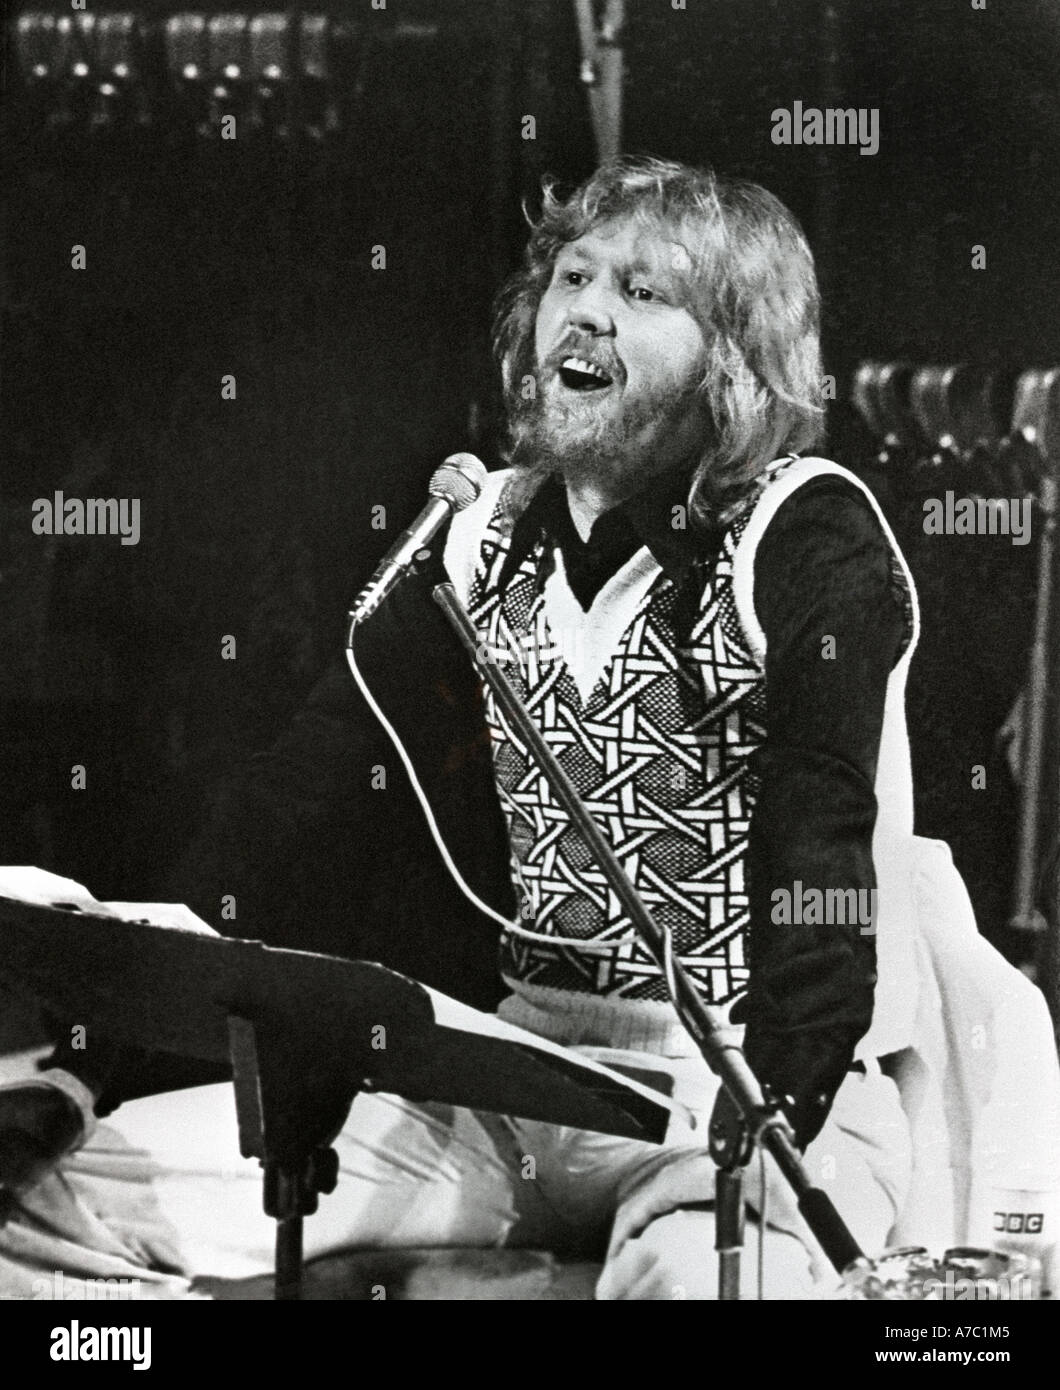 Harry Nilsson sings 'A Little Touch Of  Schmillson In The Night' his best record ever. Stock Photo